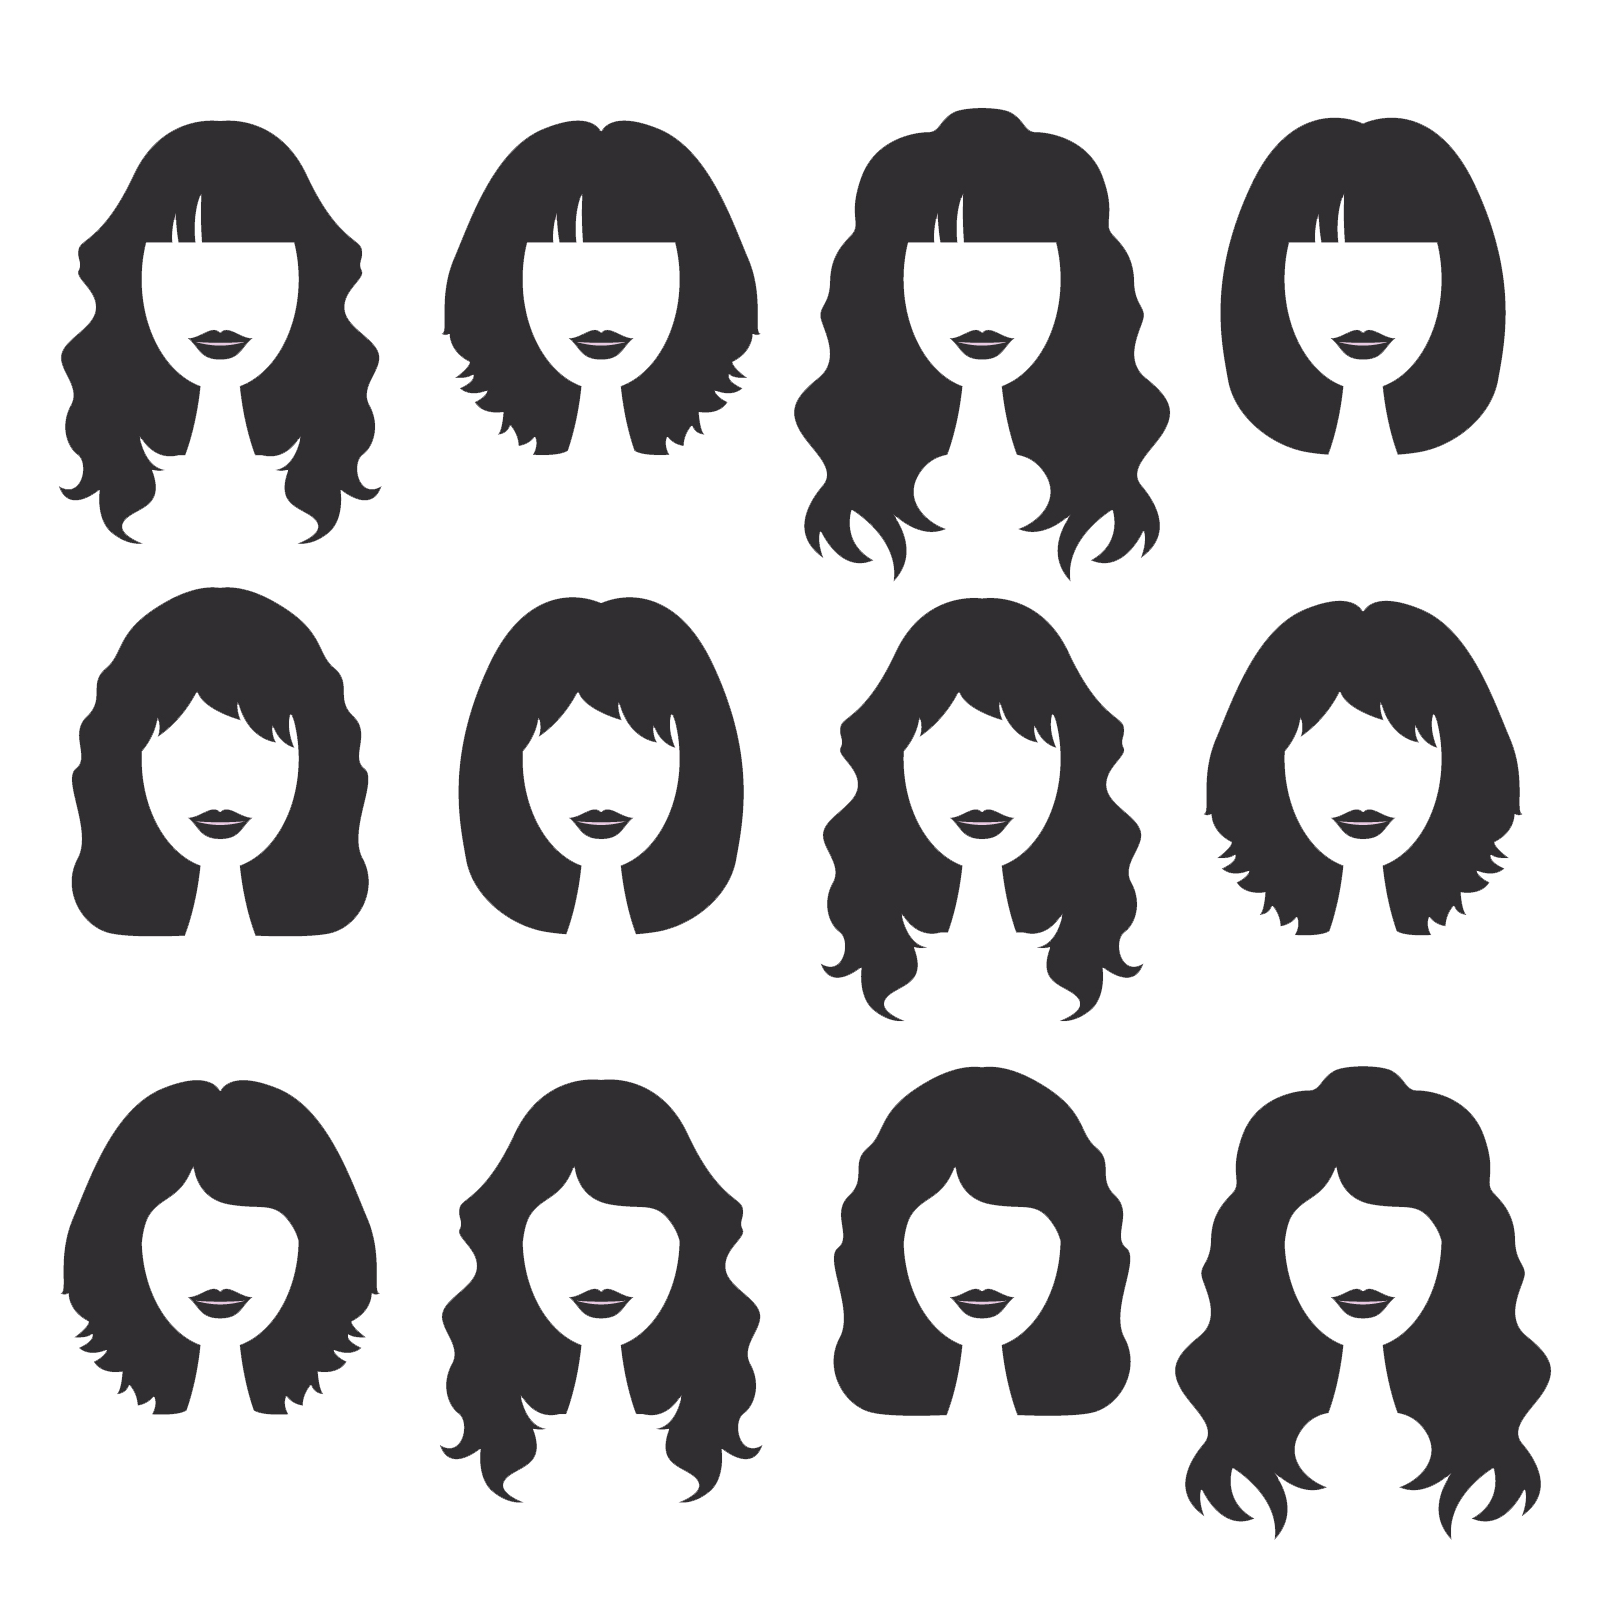 Pull hair out png. Hairstyle beauty parlour variety